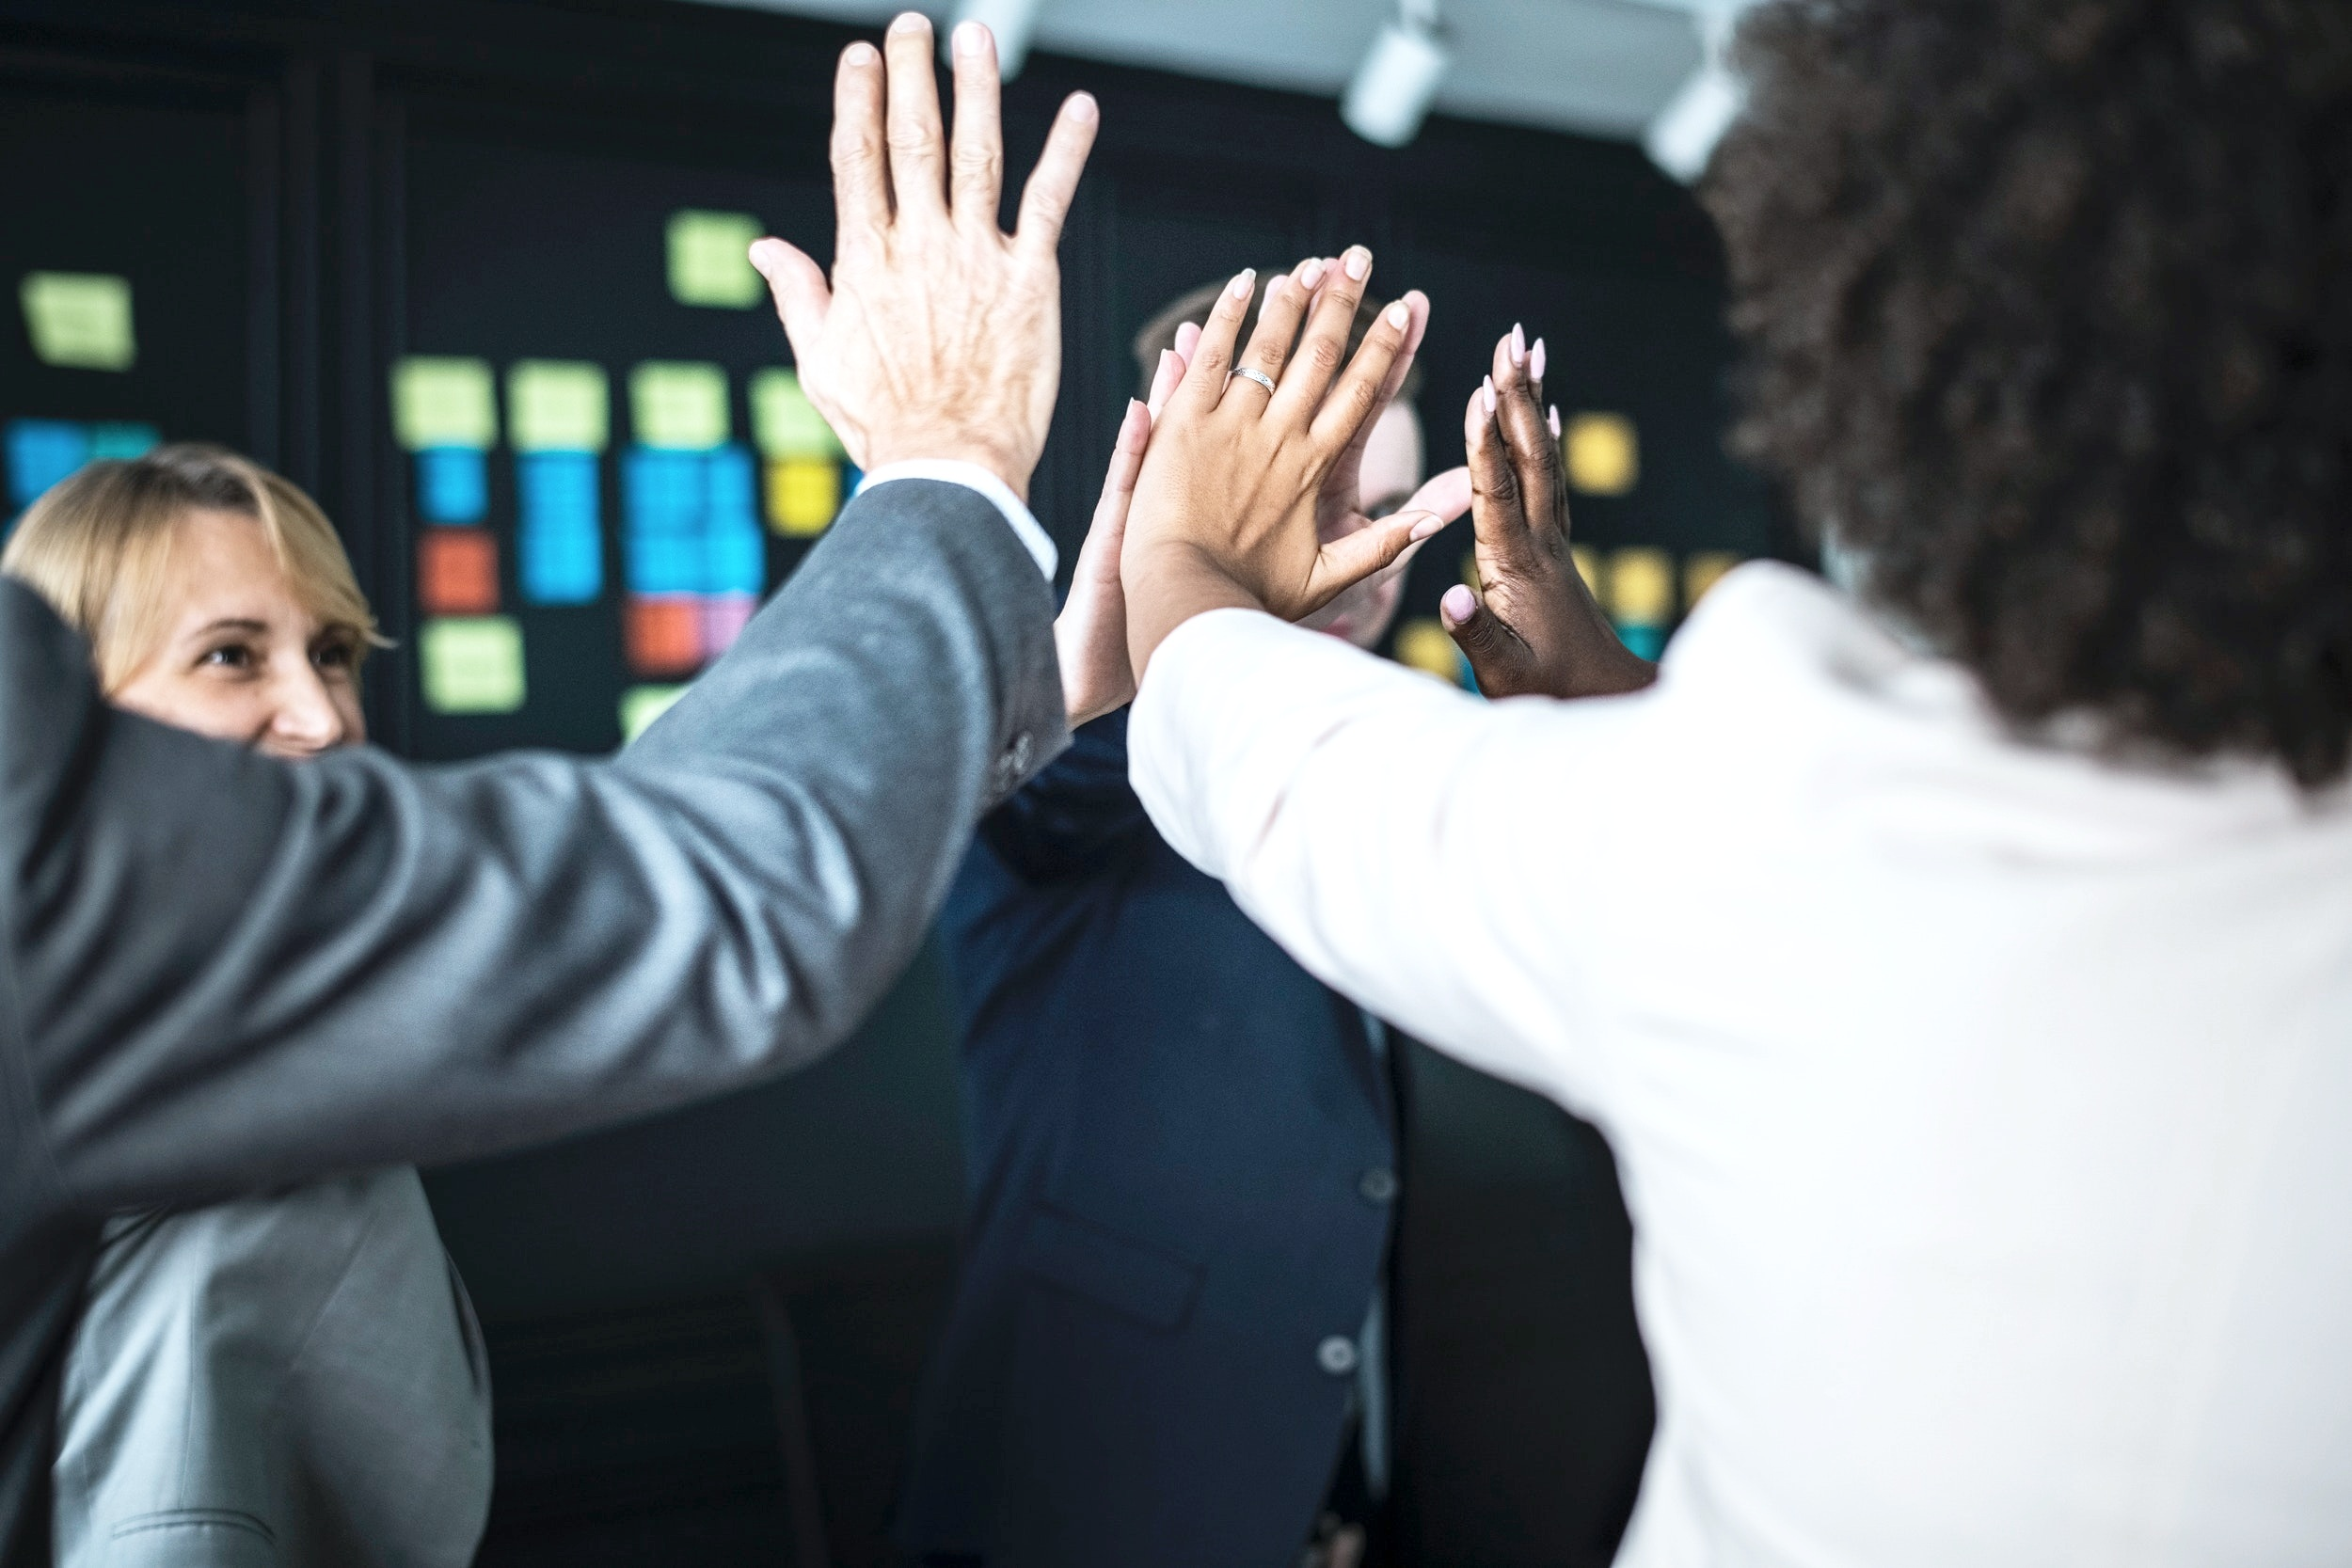 five people in office attire giving a high five in a circle